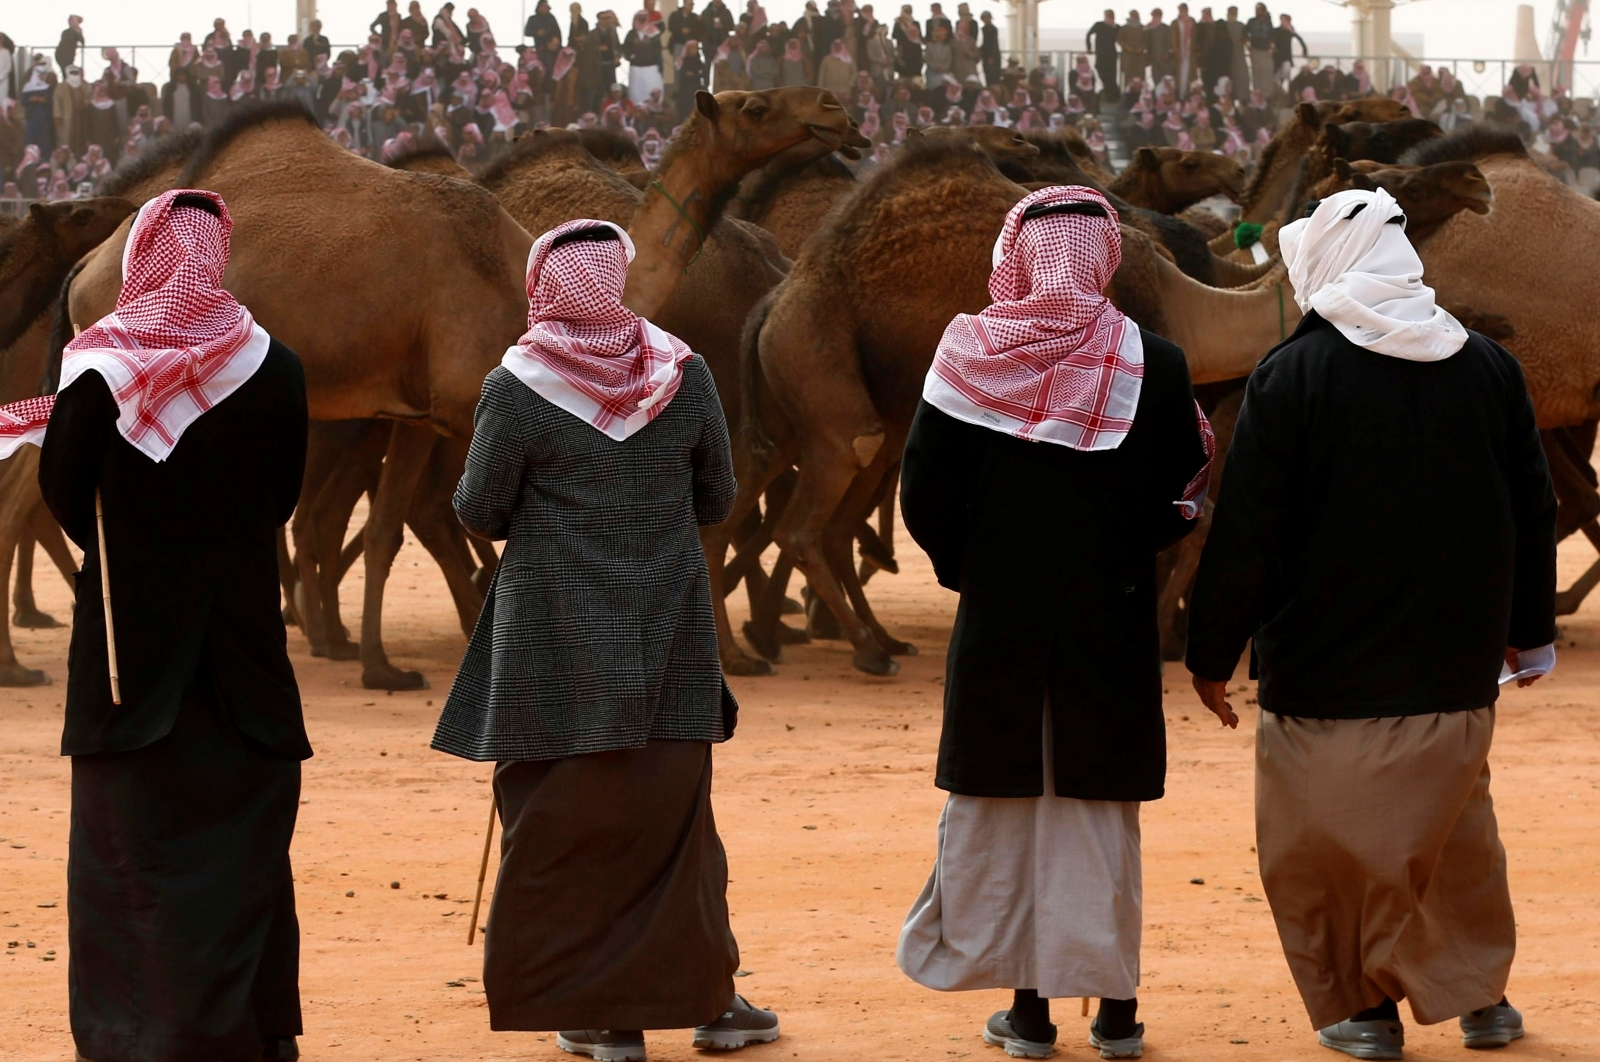 Camel beauty contest hit by cheating scandal after herders injected animals with Botox